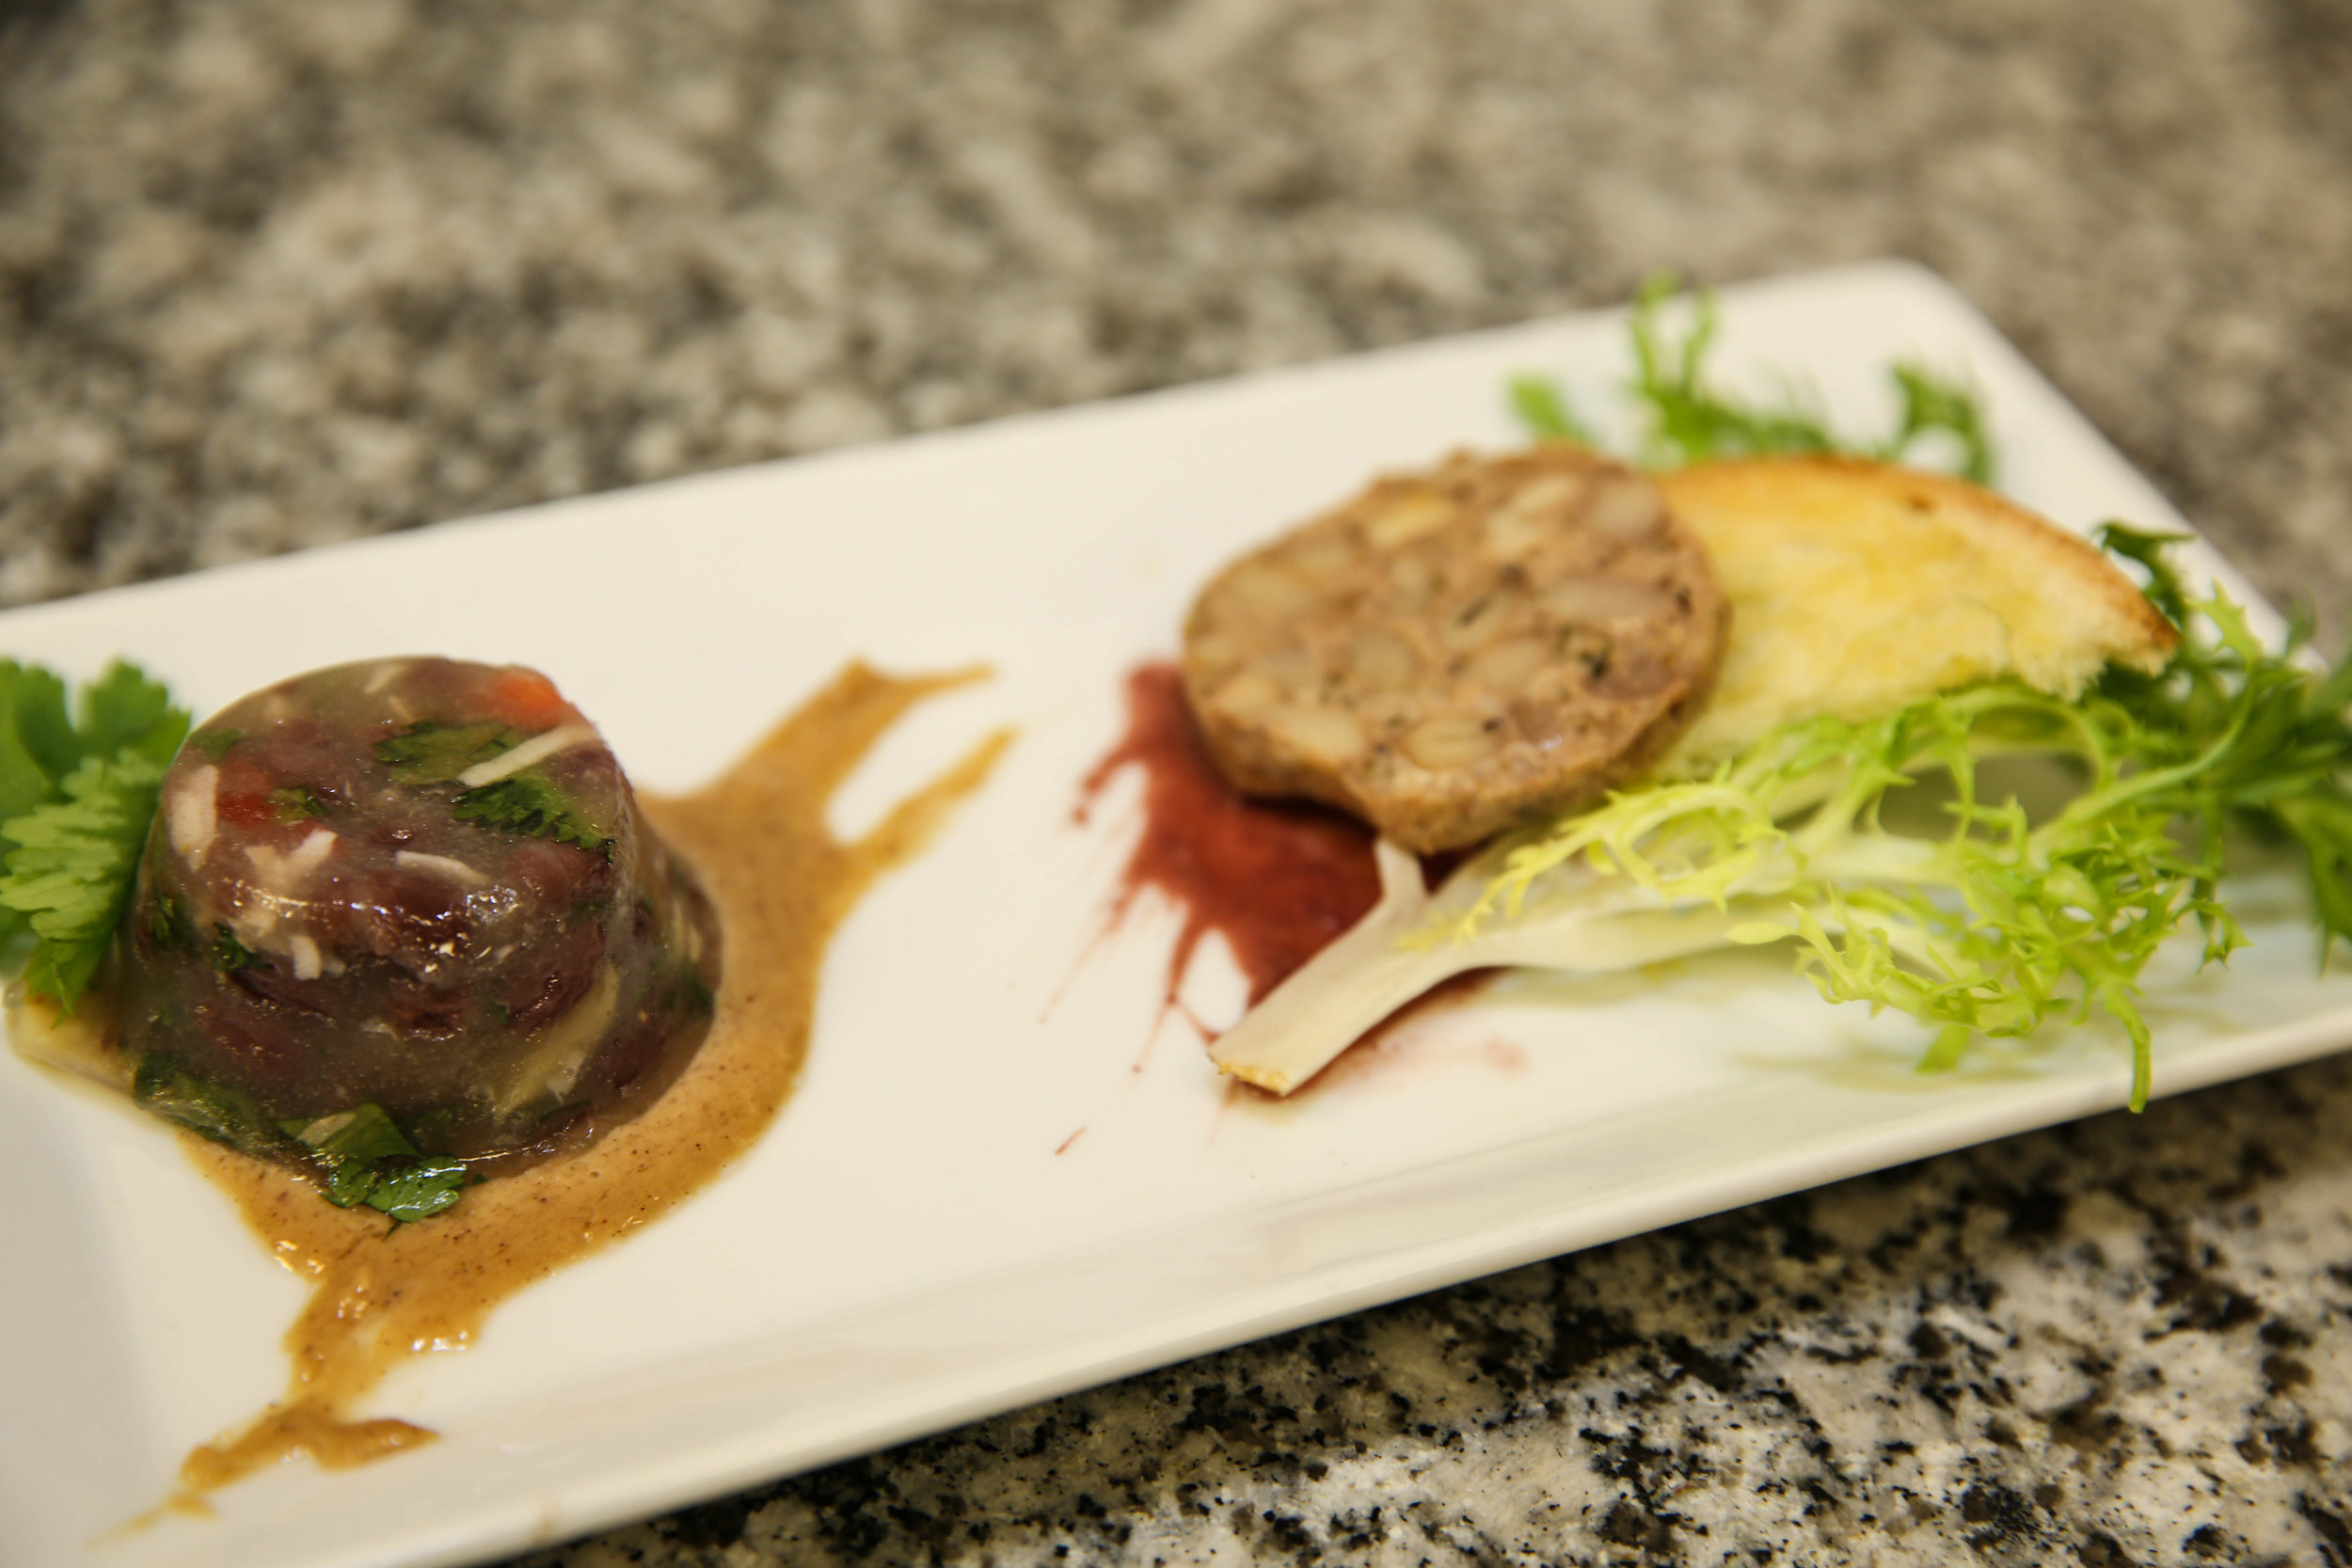 Plant-Based Aspic & Pate